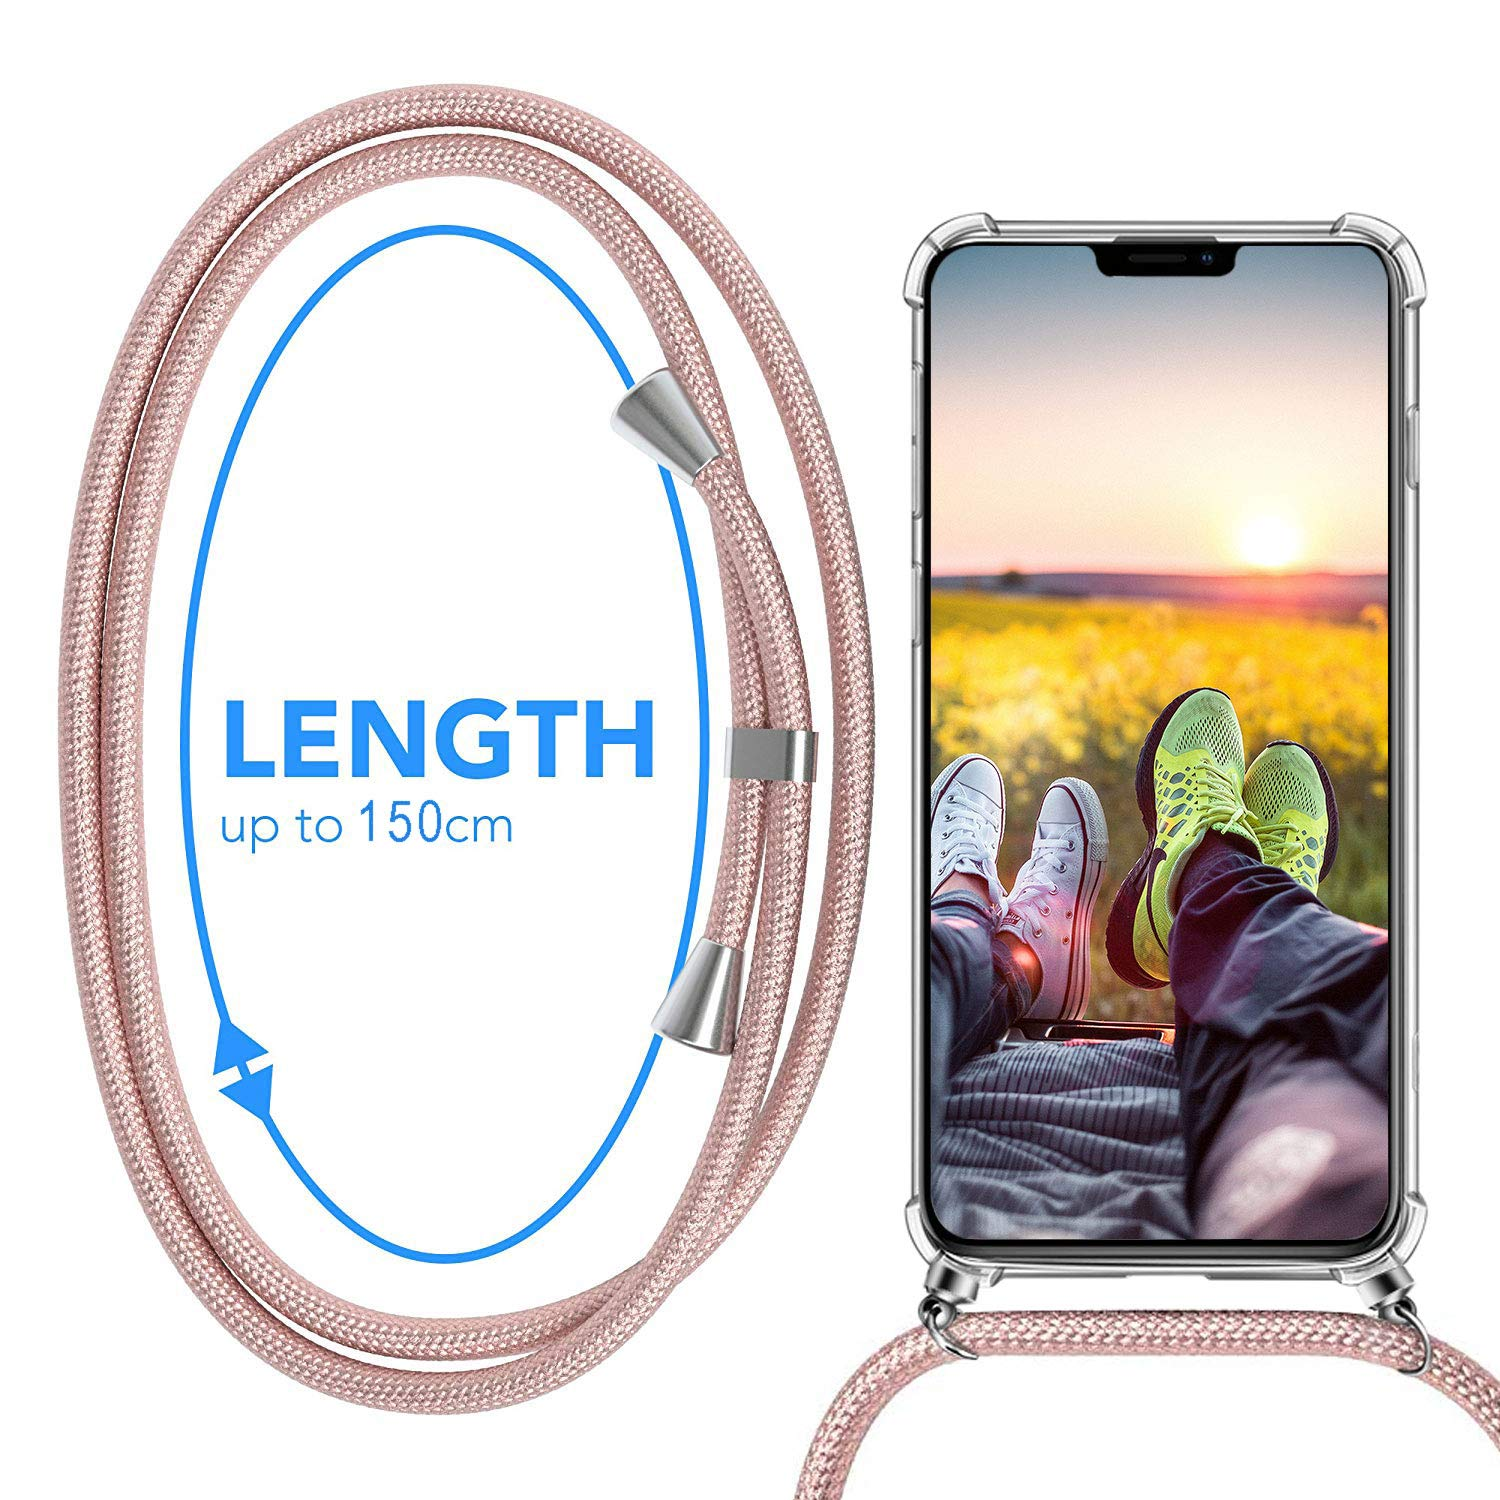 MXKOCO Carcasa de movil con Cuerda para Colgar iPhone 11-Funda ...